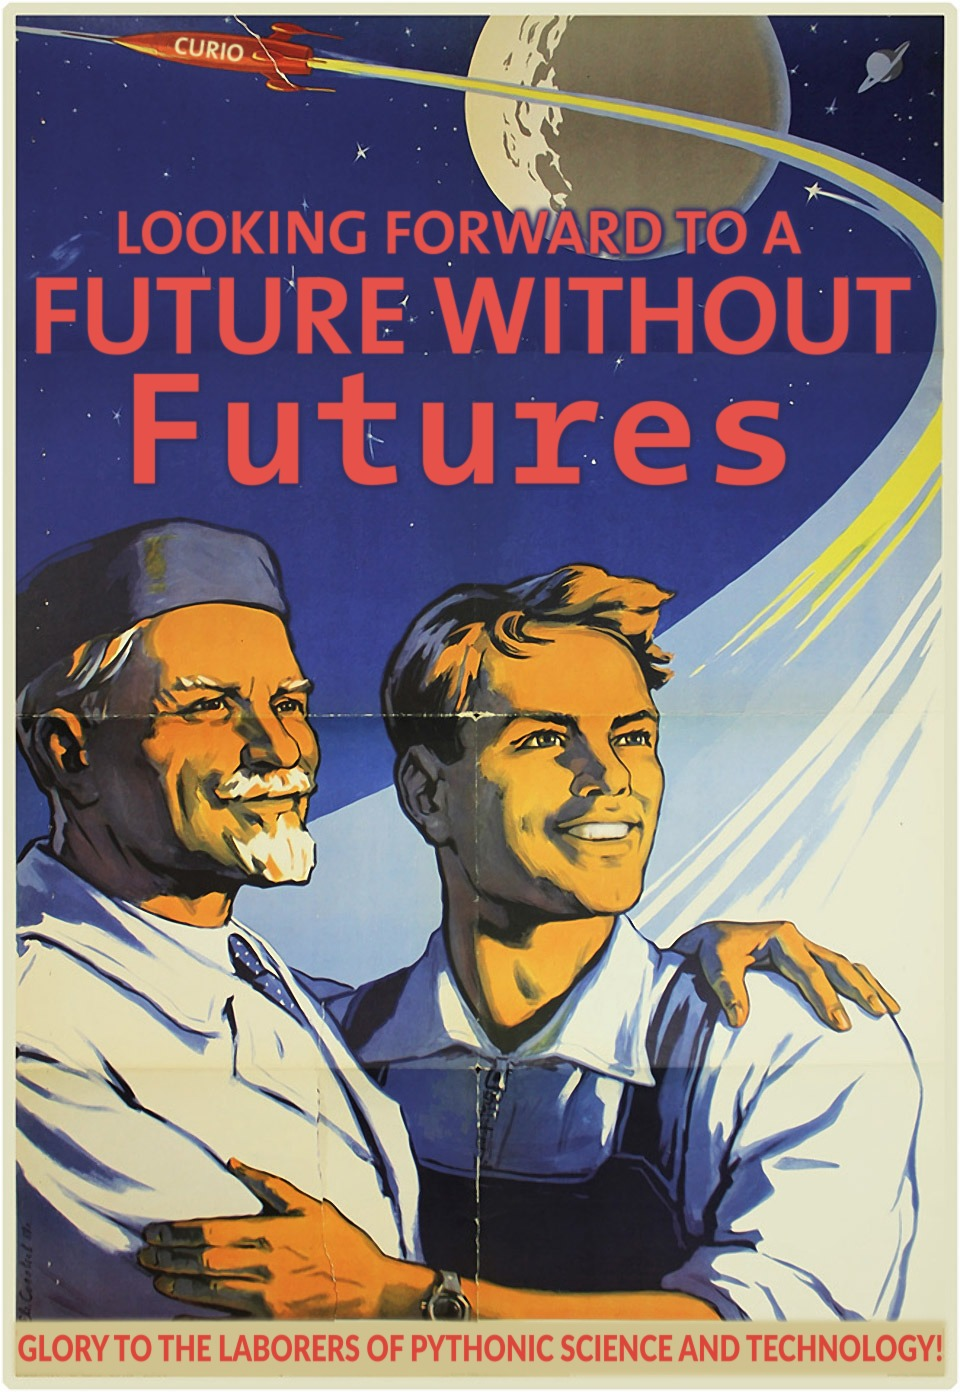 "Modified Soviet space-race propaganda poster, showing a rocket shooting off into the distance while an ethnically diverse old and young man embrace and gaze into the glorious future. The rocket is labeled ""curio"", and large text says: ""Looking forward to a future without Futures!"". Small text says: ""Glory to the laborers of Pythonic science and technology!"""